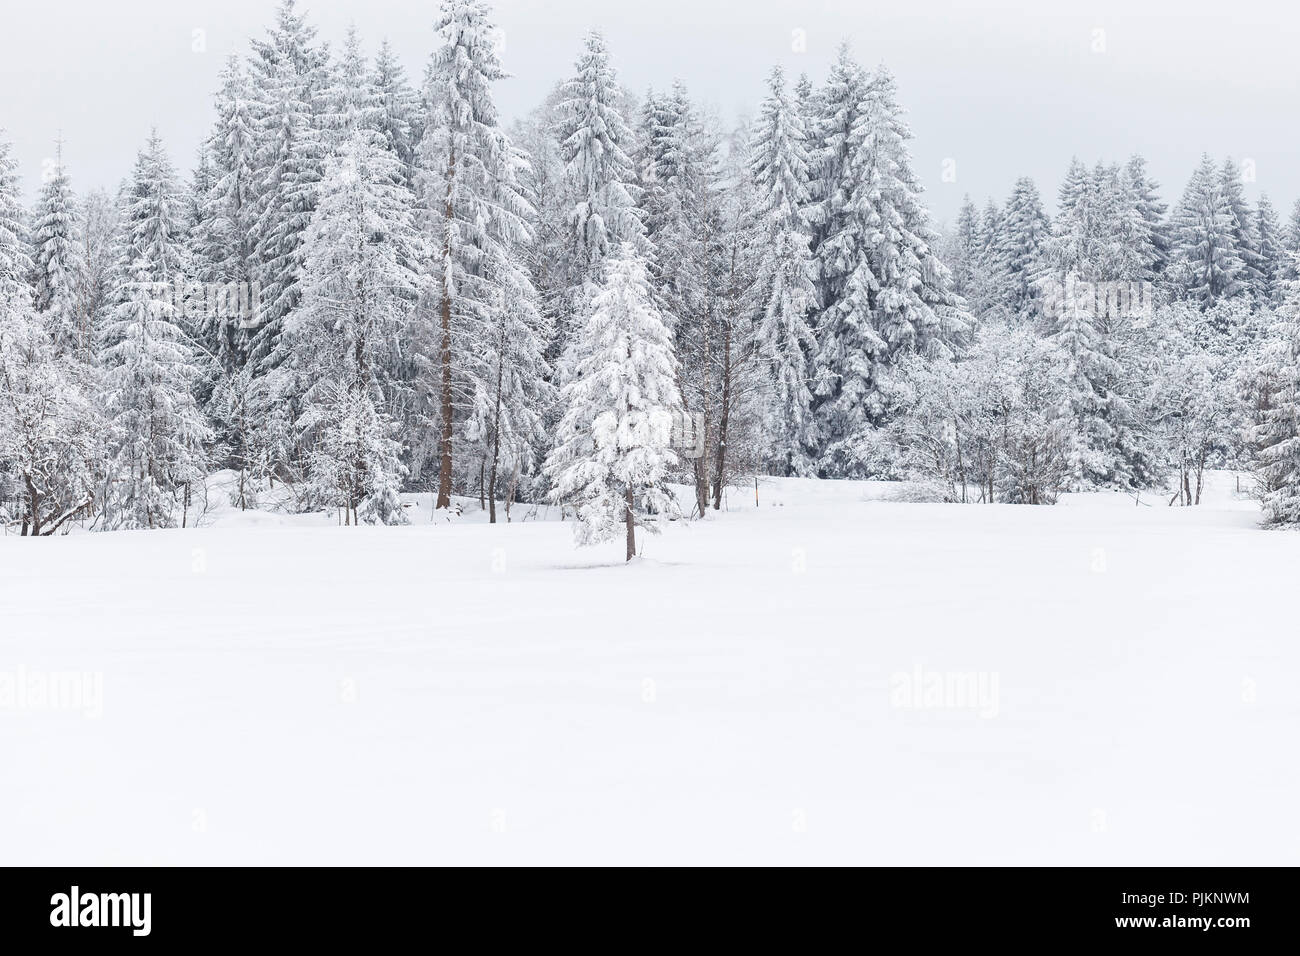 Firs and spruces in snowy landscape, - Stock Image